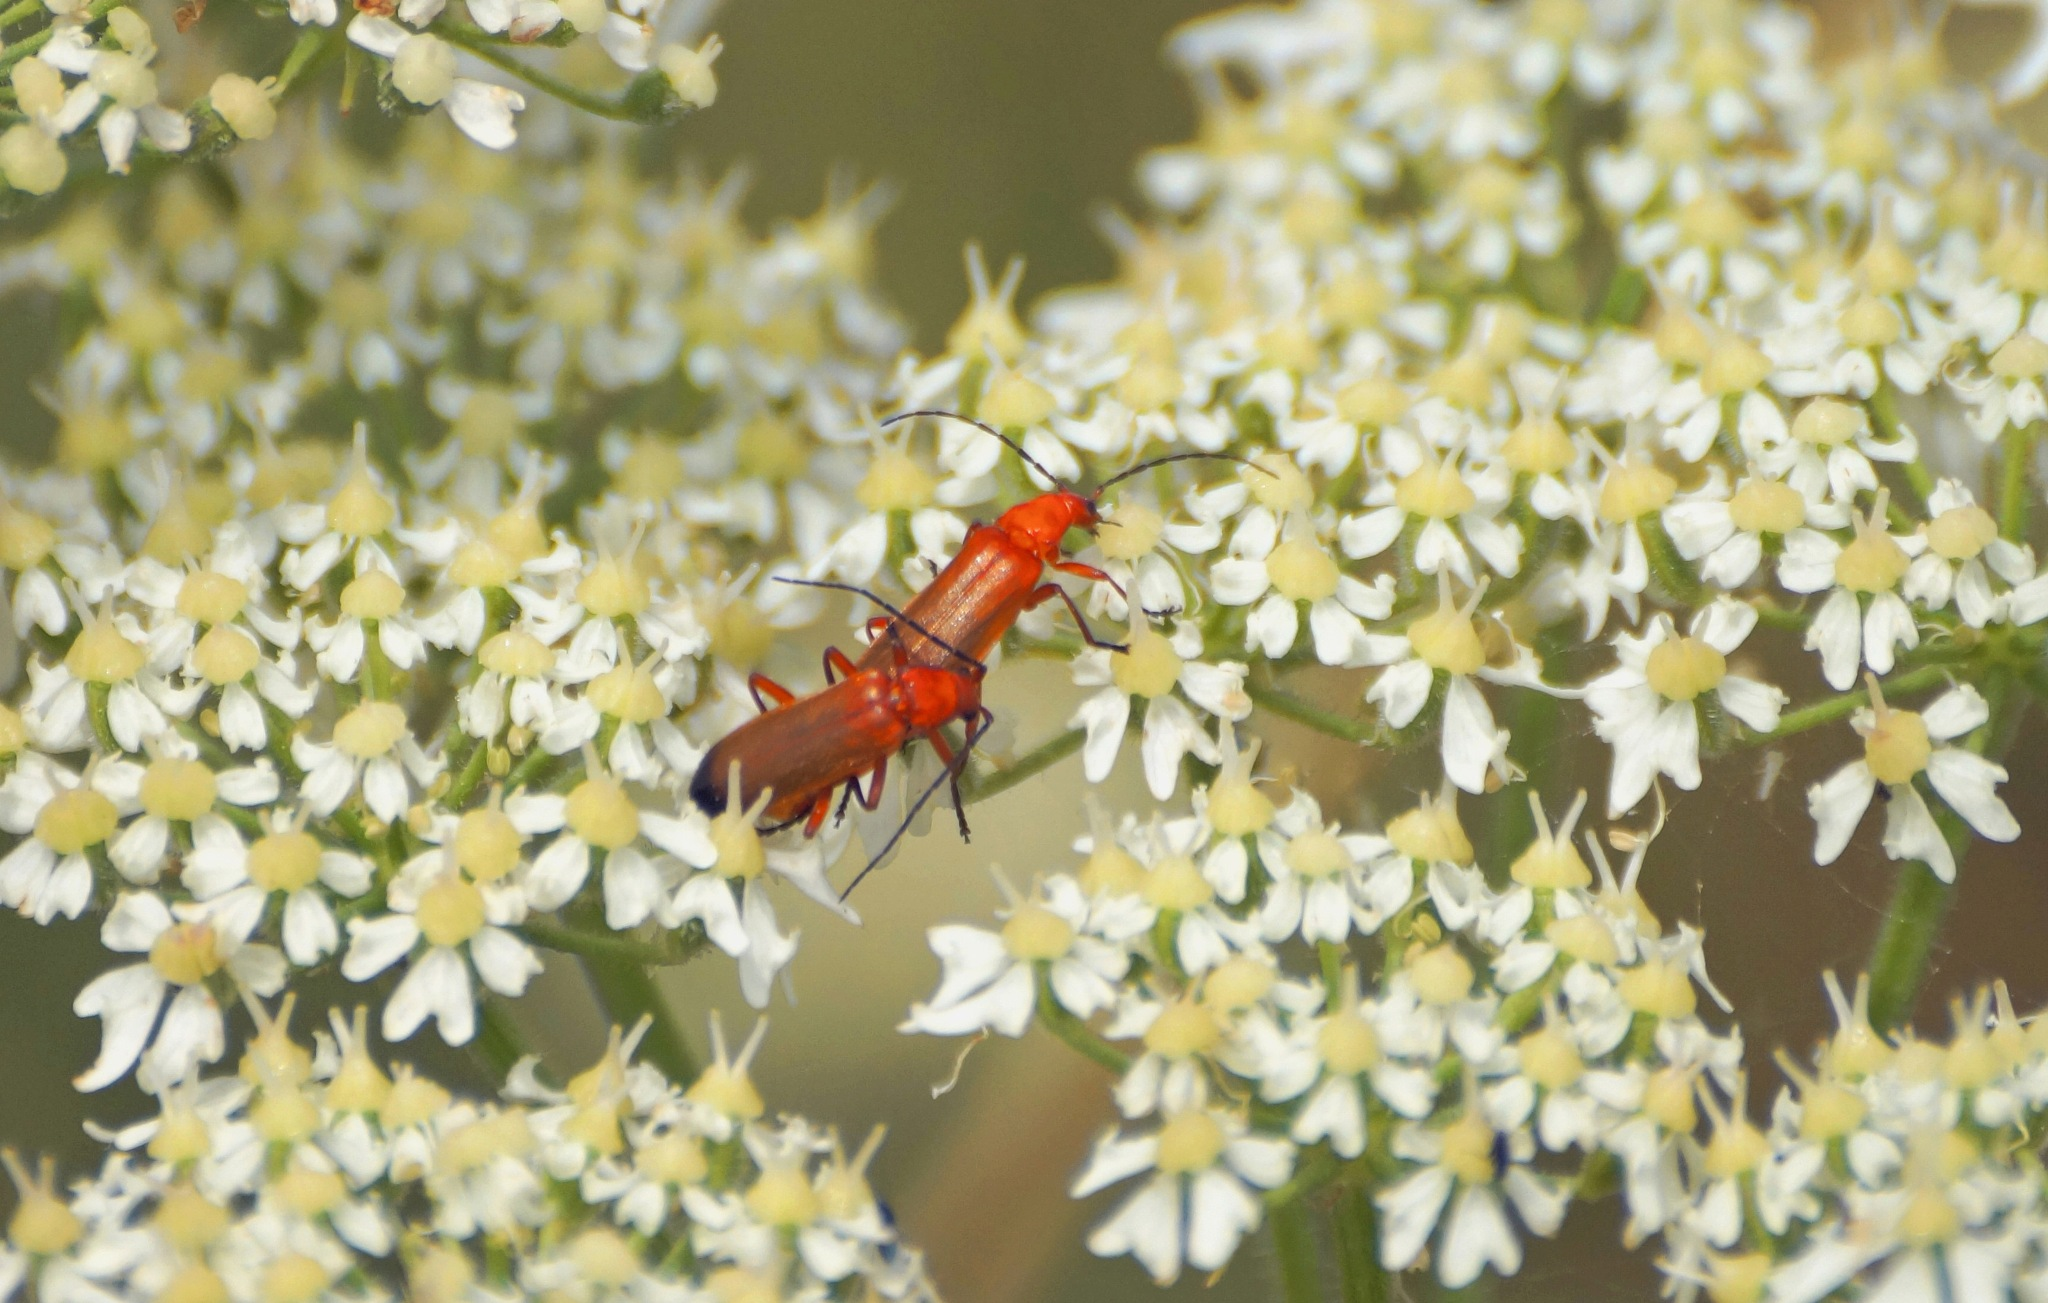 Common Red Soldier Beetles by Marian Baay